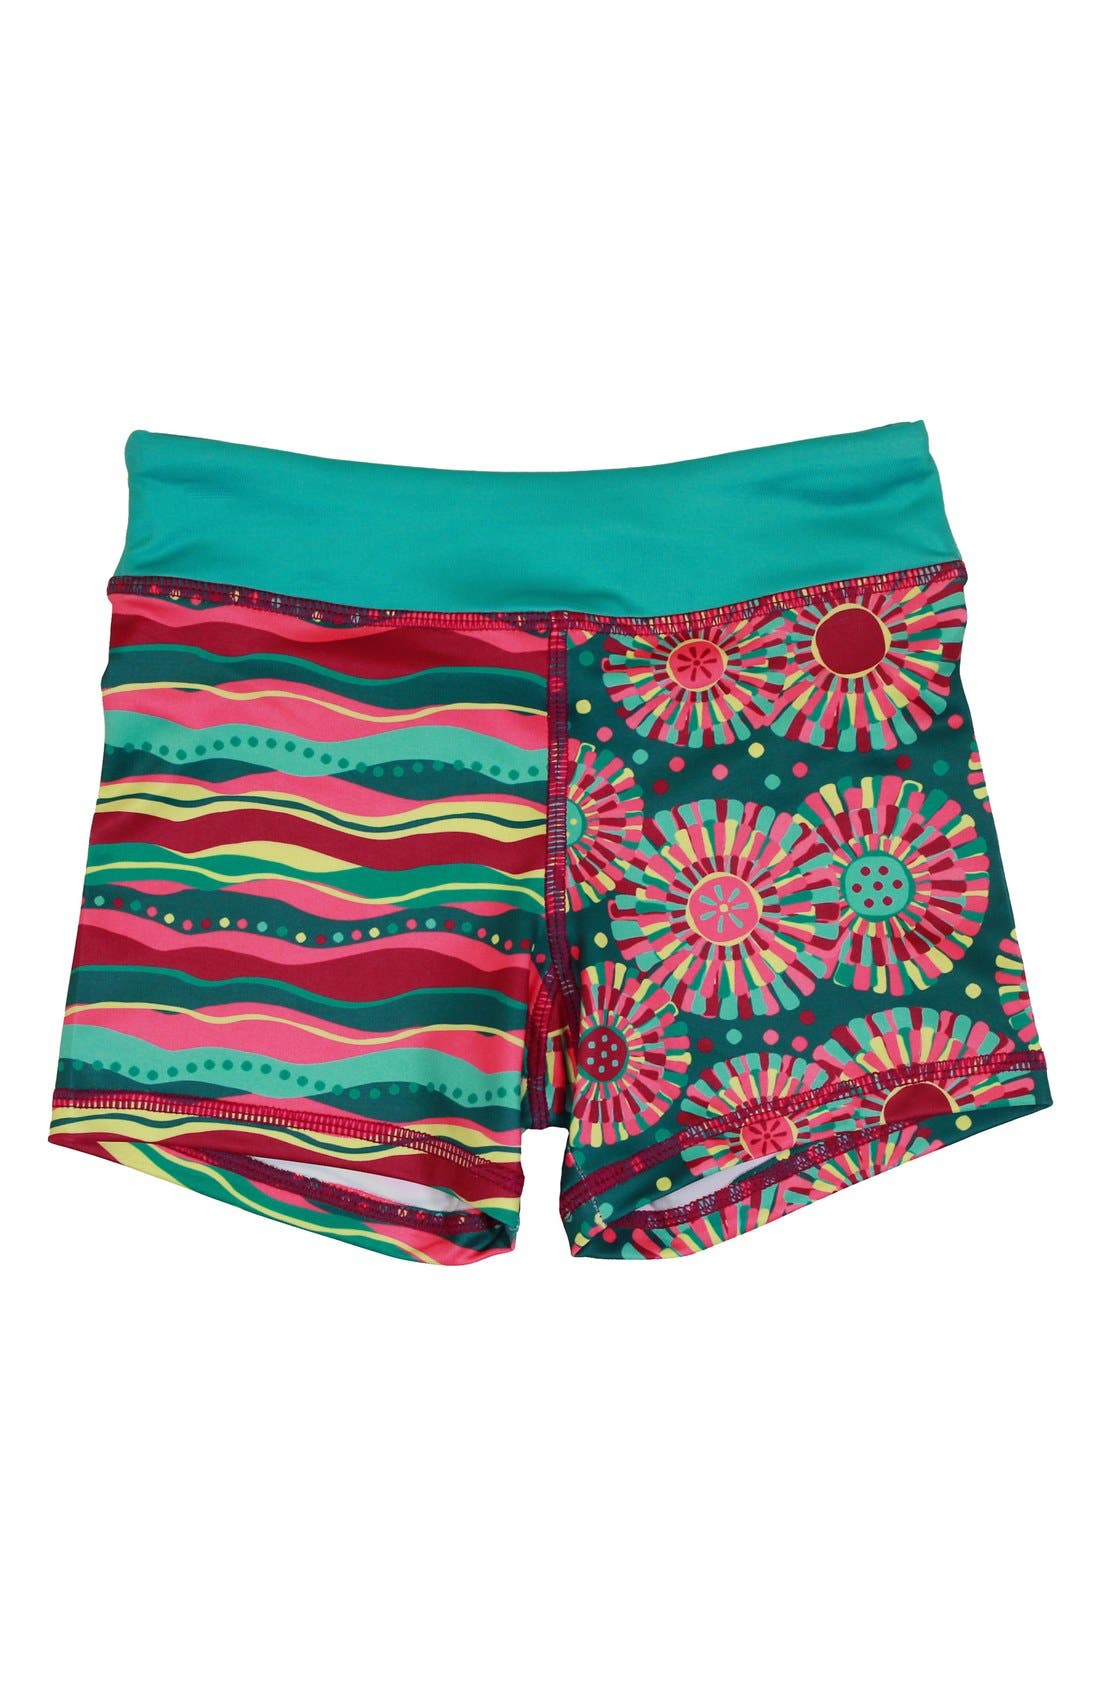 'Splits' Mixed Print Shorts,                         Main,                         color, Gleam